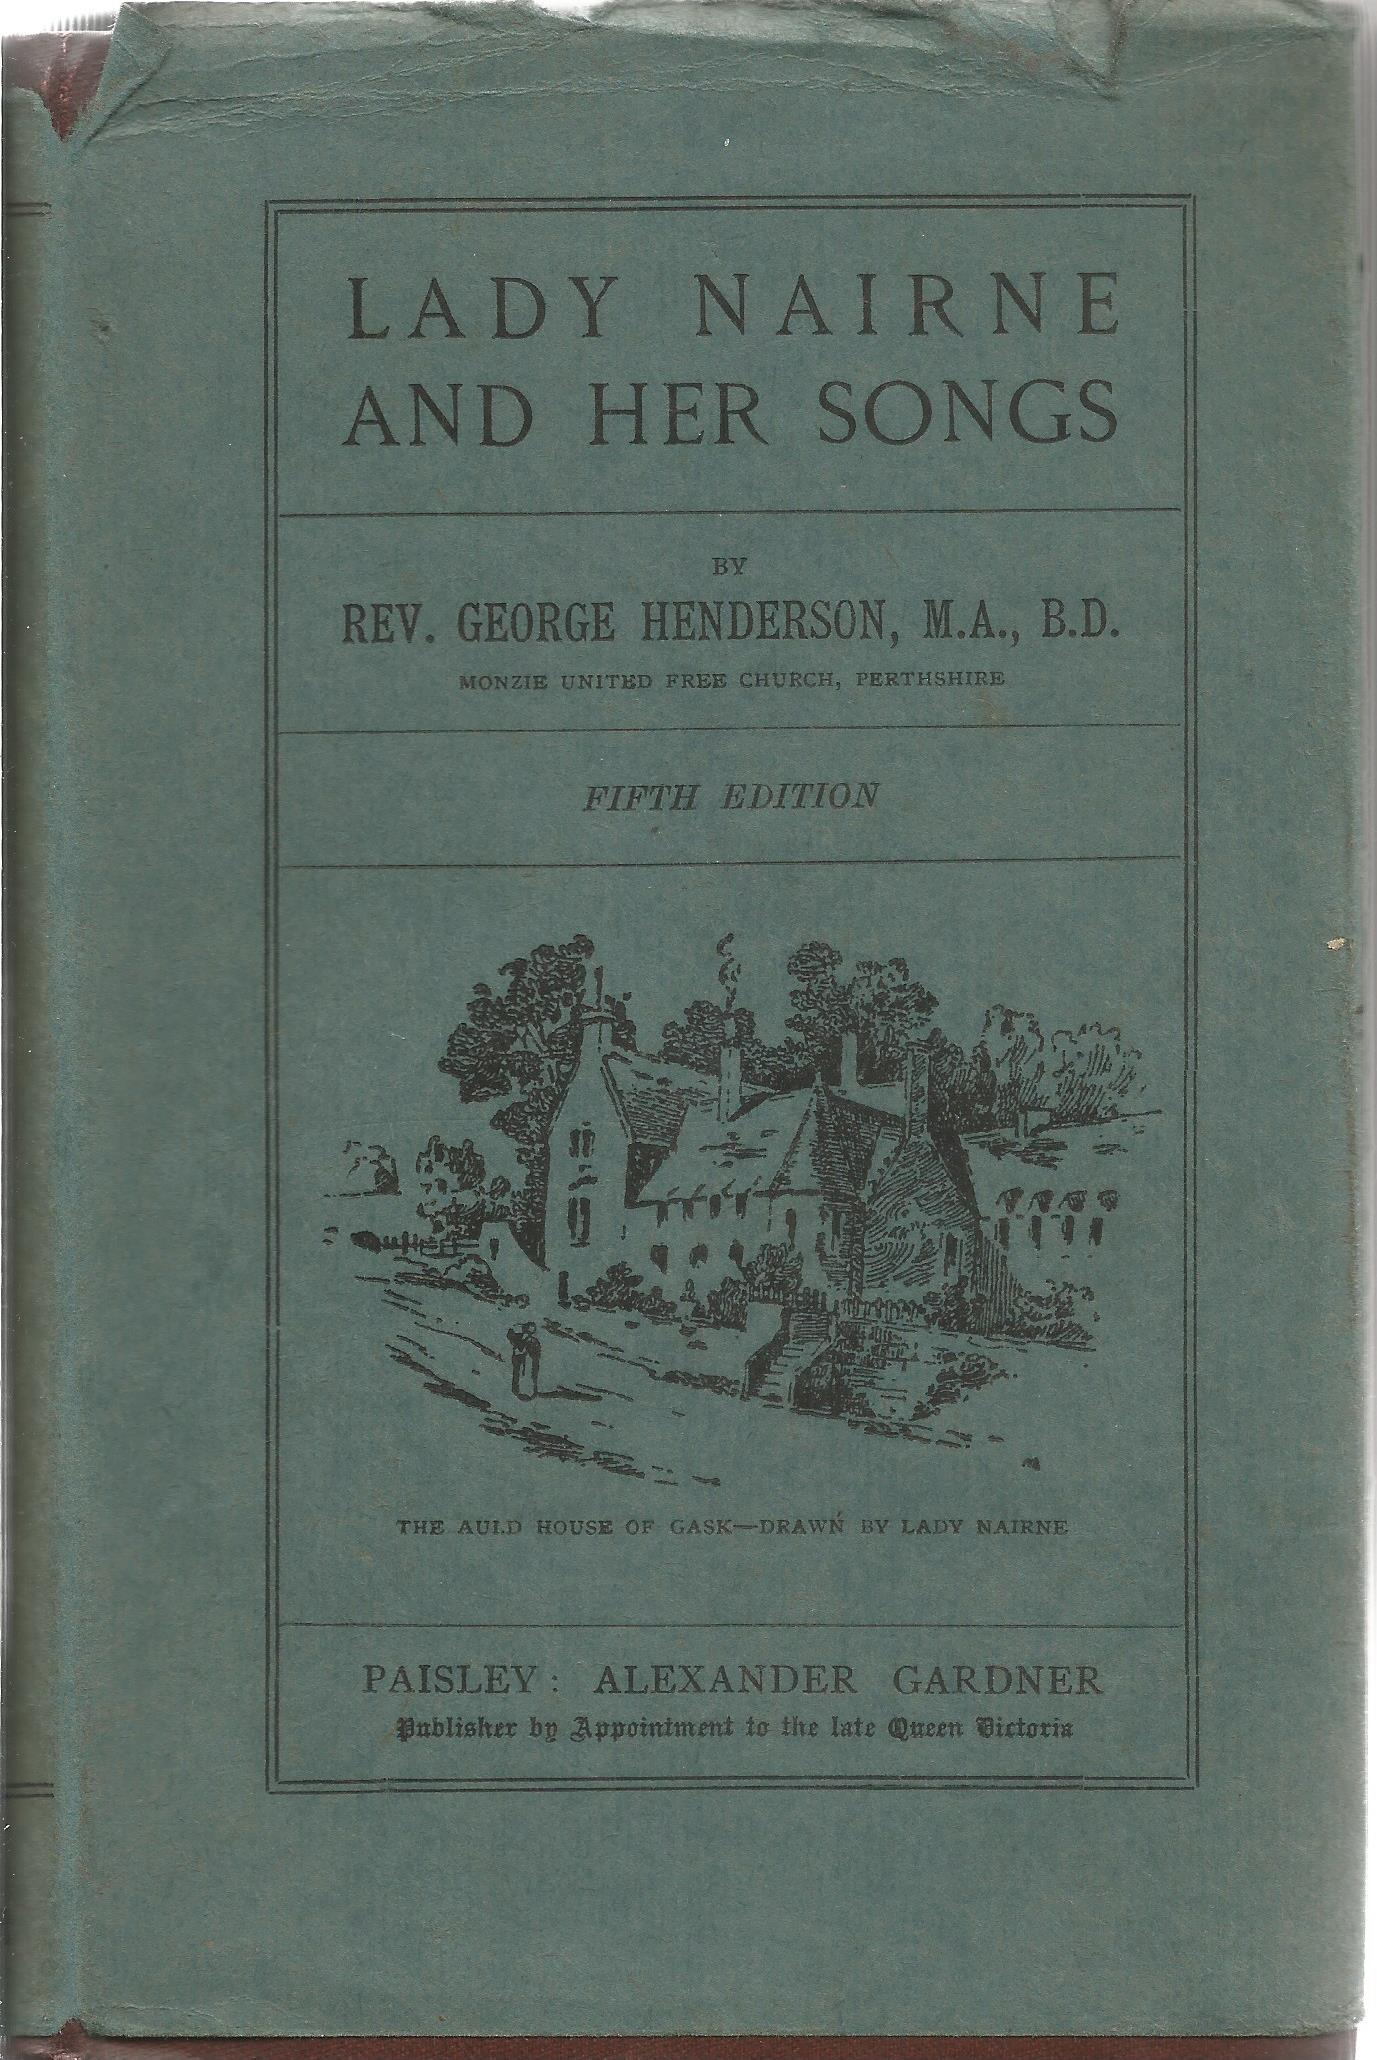 Rev George Henderson Hardback Book Lady Nairne and Her Songs signed by the Author on the Title